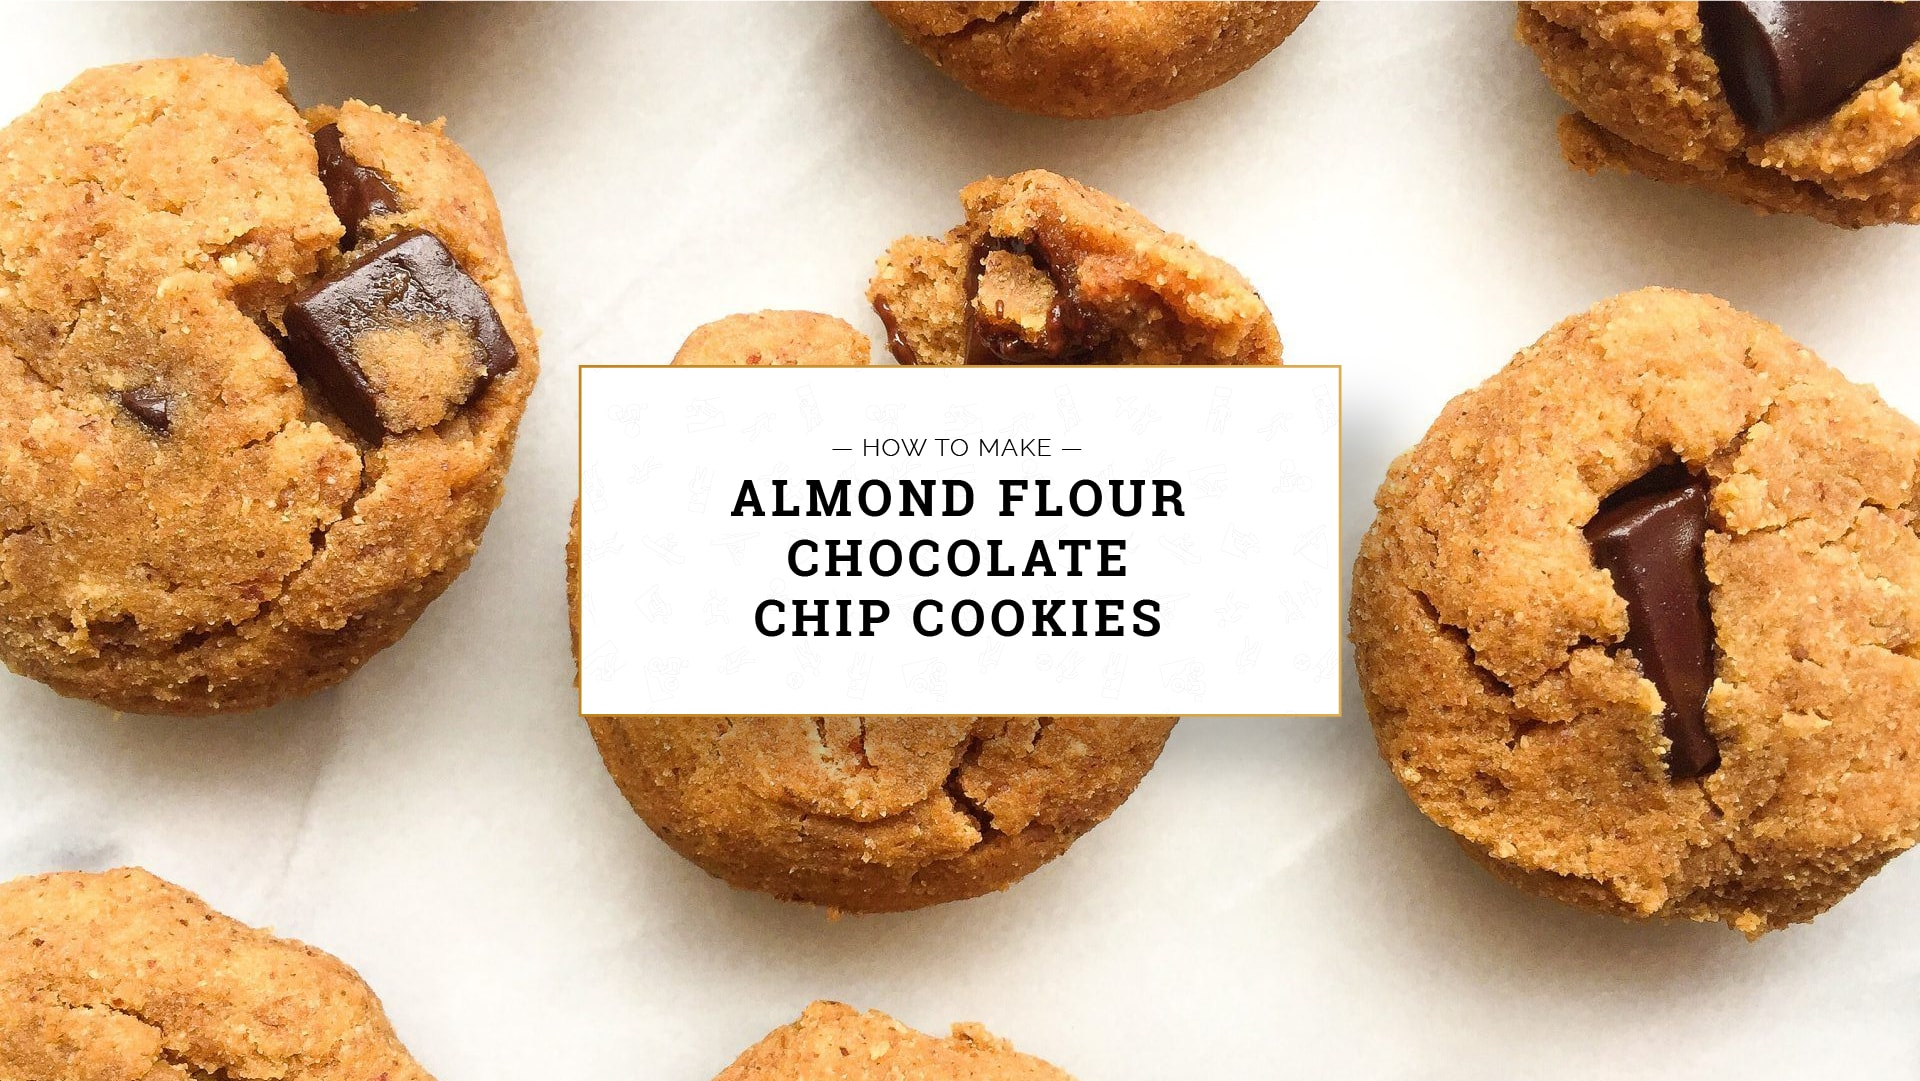 Almond Flour Chocolate Chip Cookies, how to make almond flour chocolate chip cookies